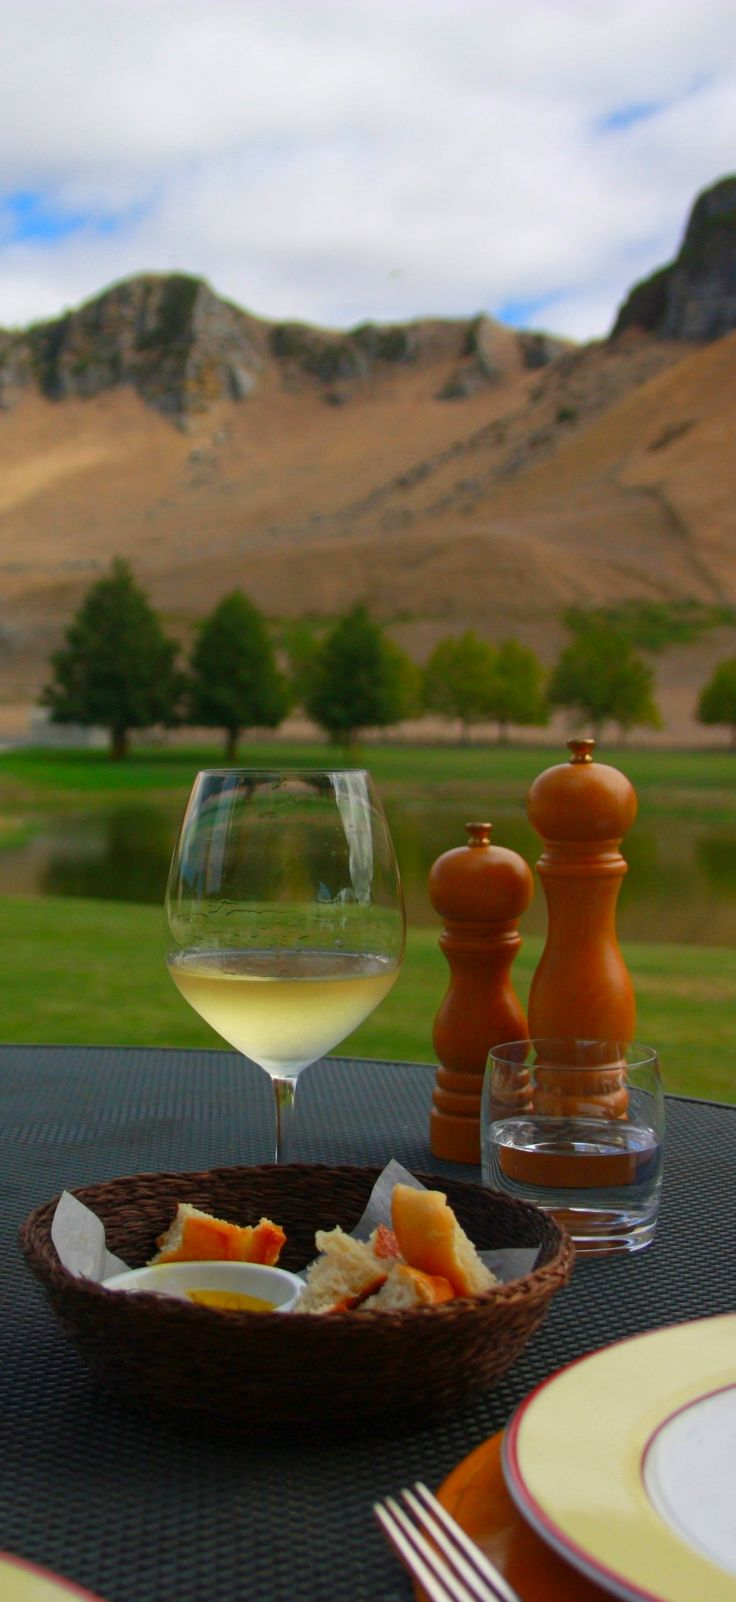 Te Mata Peak from Craggy Range Winery, Hawkes Bay, New Zealand for the wines, the view or the wedding? #destinationweddings #newzealand #nzwine http://www.purenzweddings.com/blog/weddings/best-time-of-year-to-marry-in-new-zealand